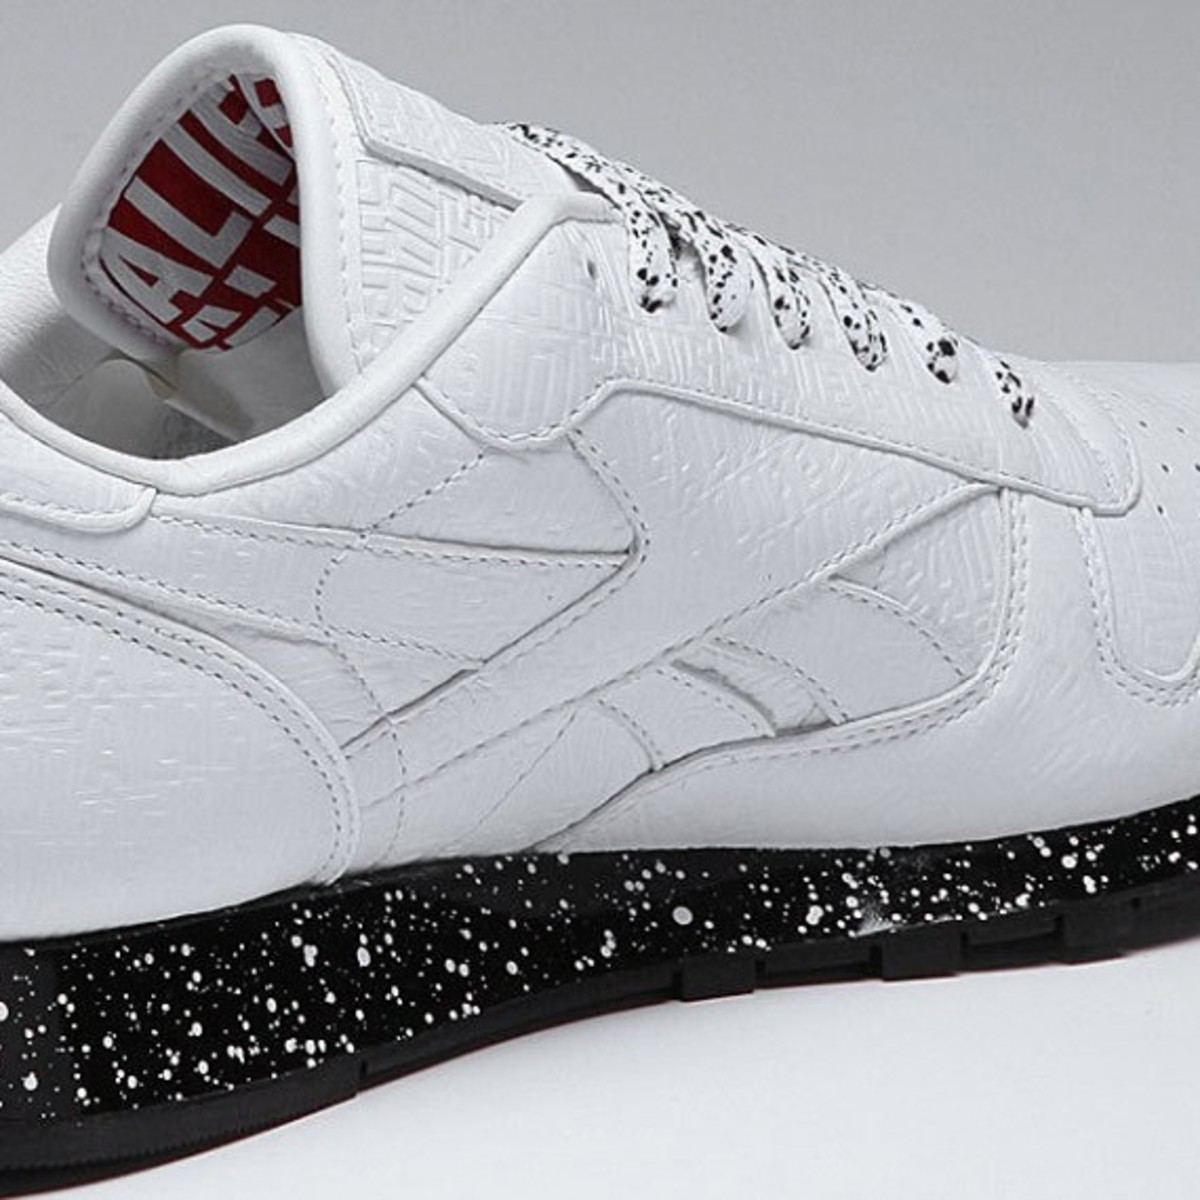 alife-reebok-classic-leather-lux-white-speck-05